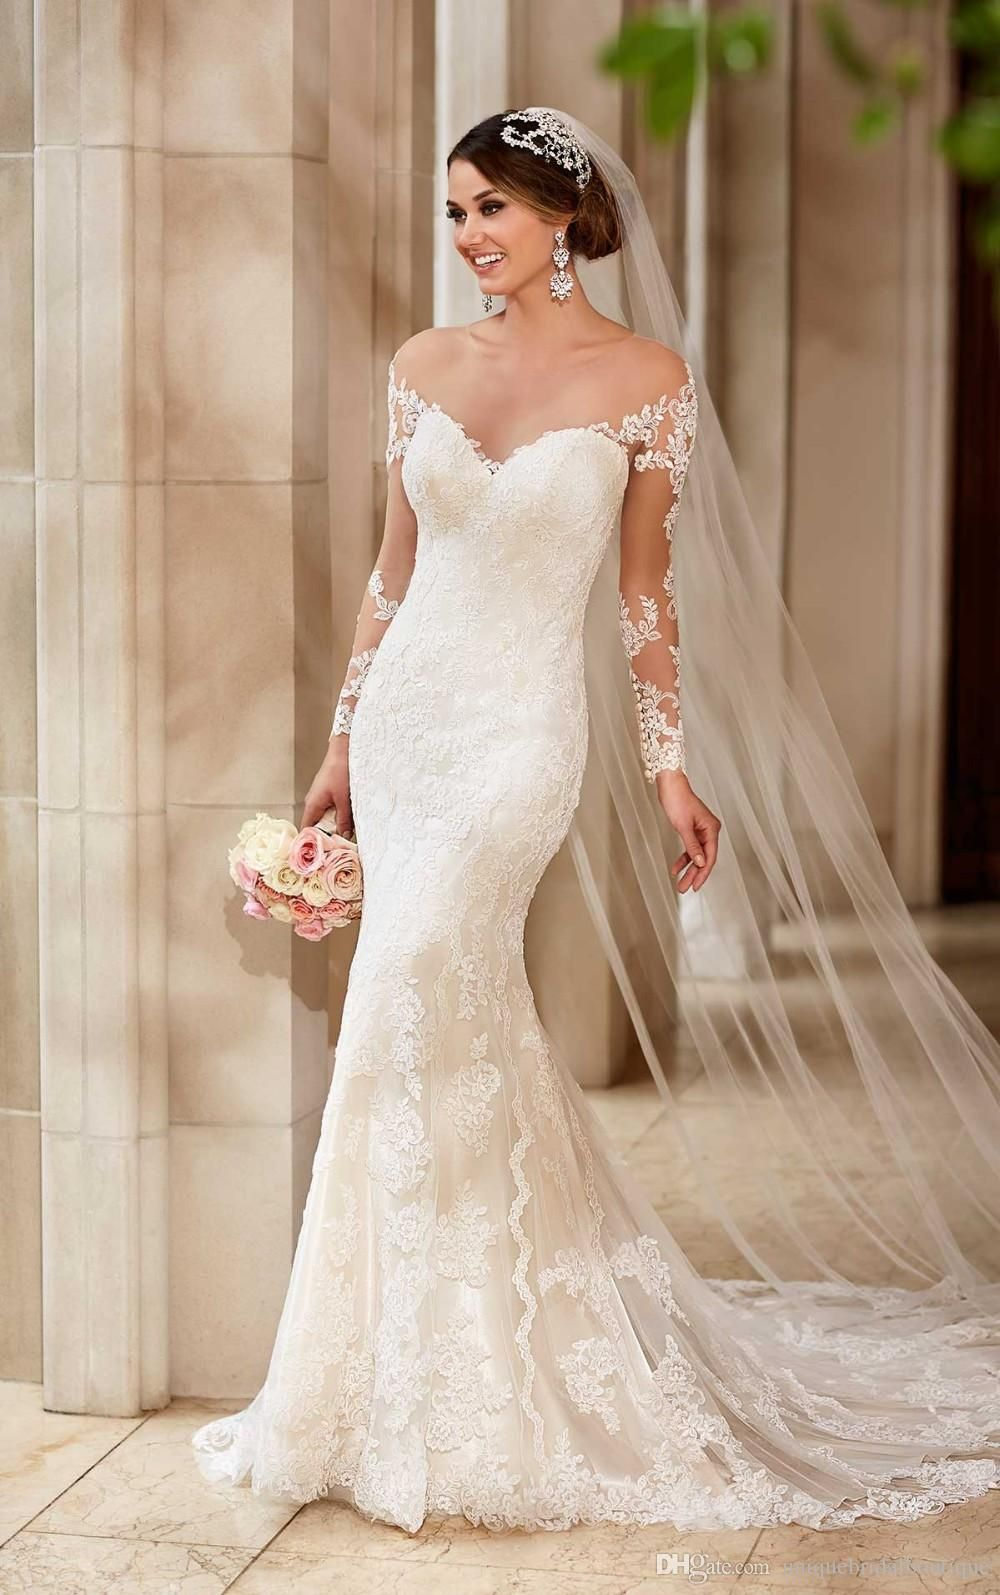 390e283c8b85f 2016 In Stock Cheap Wedding Dresses Under 100 With Illusion Long Sleeves  And Off Shoulder Applique